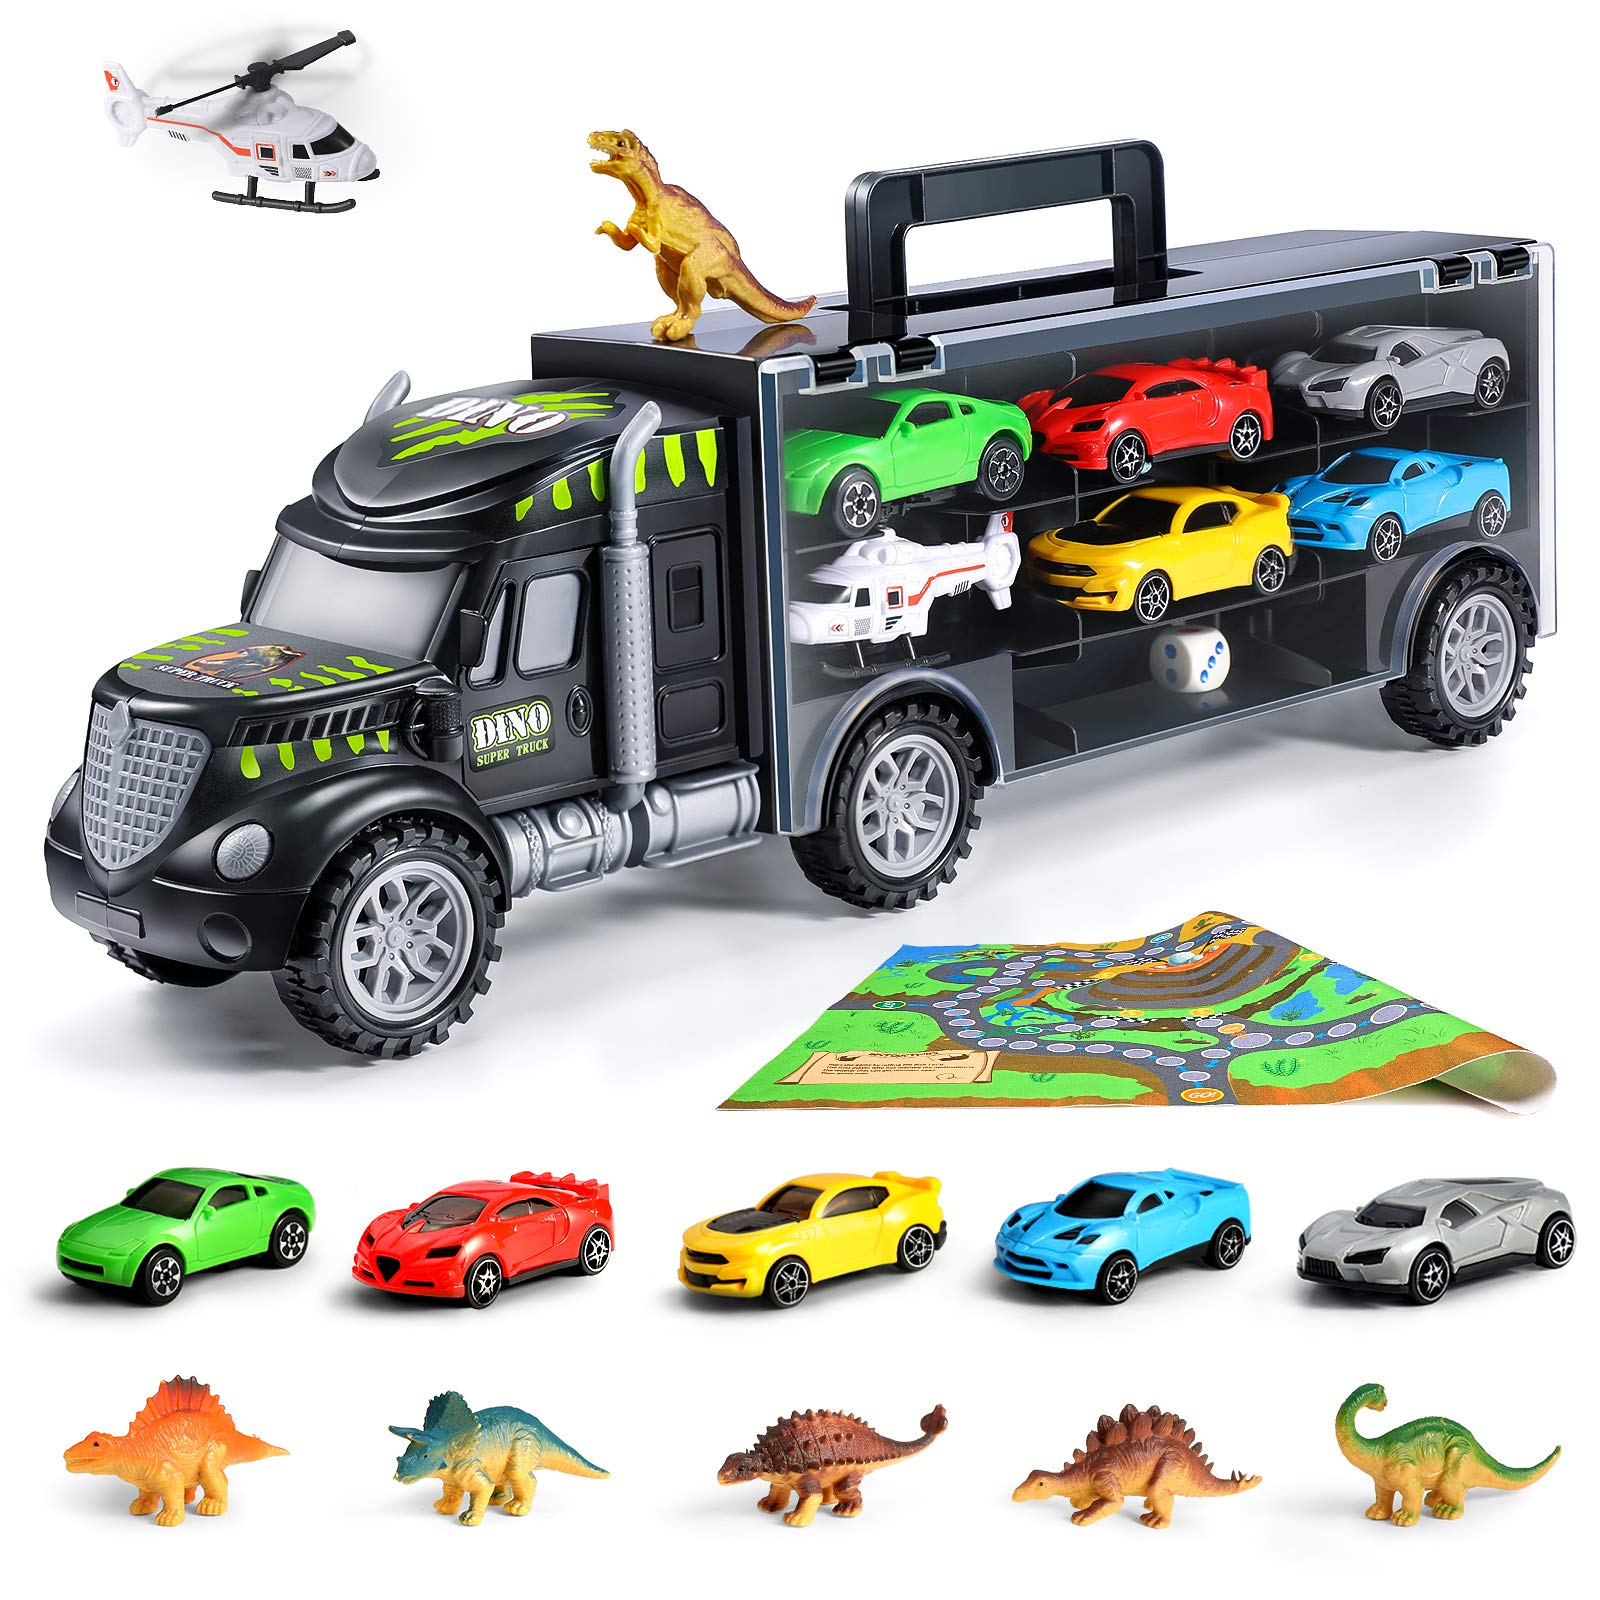 Toddlers Transport Car Dinosaur Carrier Truck Toy with 6 Racing Cars Tractor Trailer Vehicles Fit 6 Toy Cars Slots Dinosaur Toys-Great Gifts for Boys//Girls